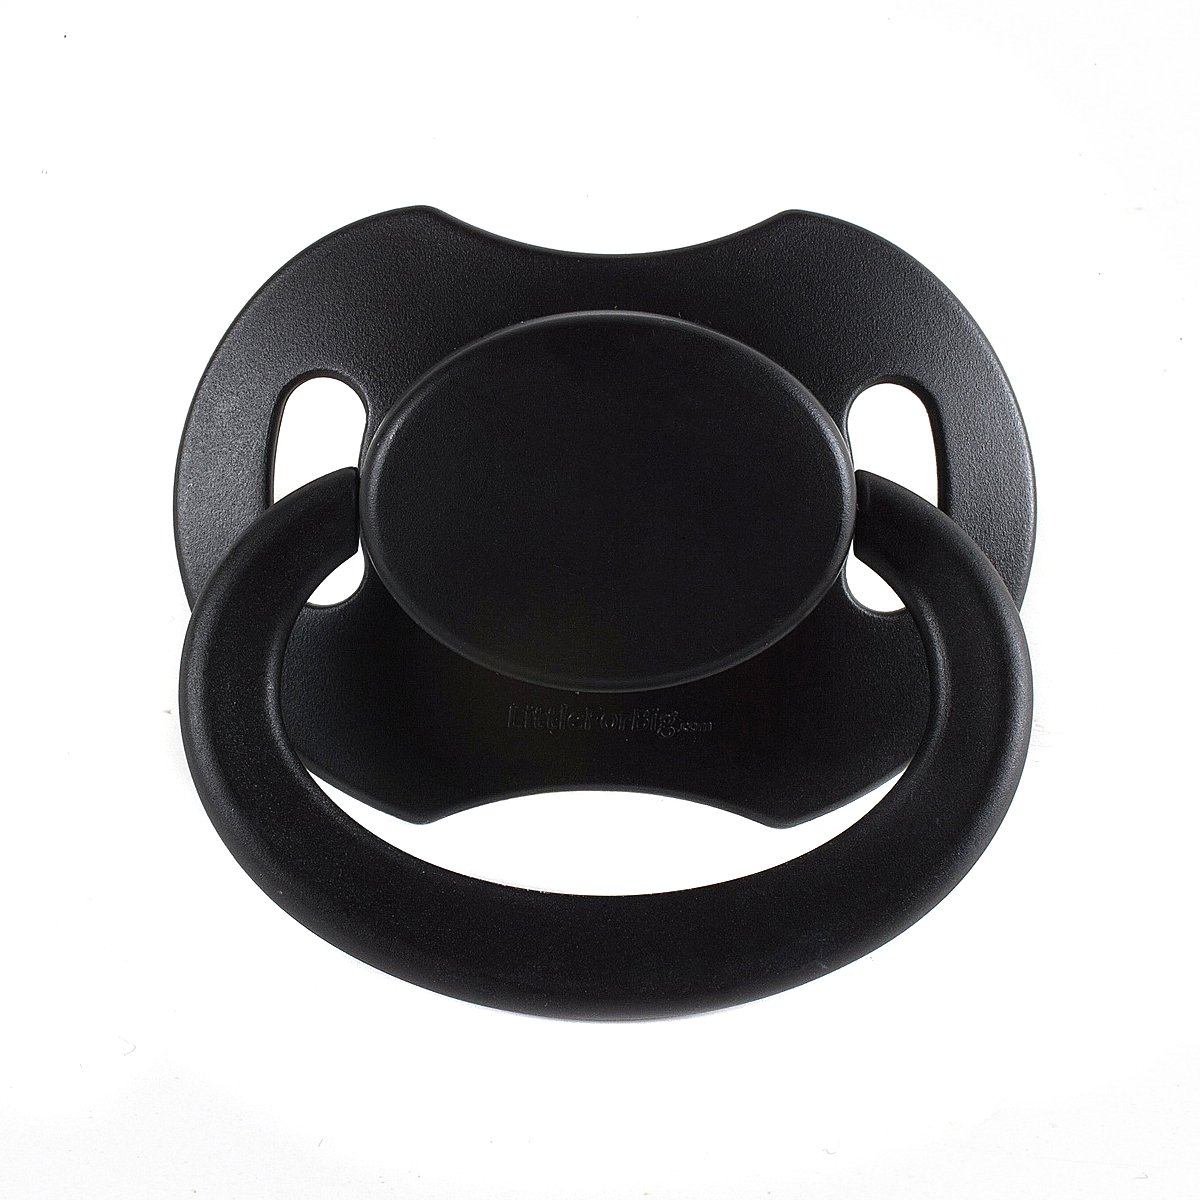 LittleForBig Bigshield Generation 2 Adult Sized Pacifier Dummy for Adult Baby ABDL-Black